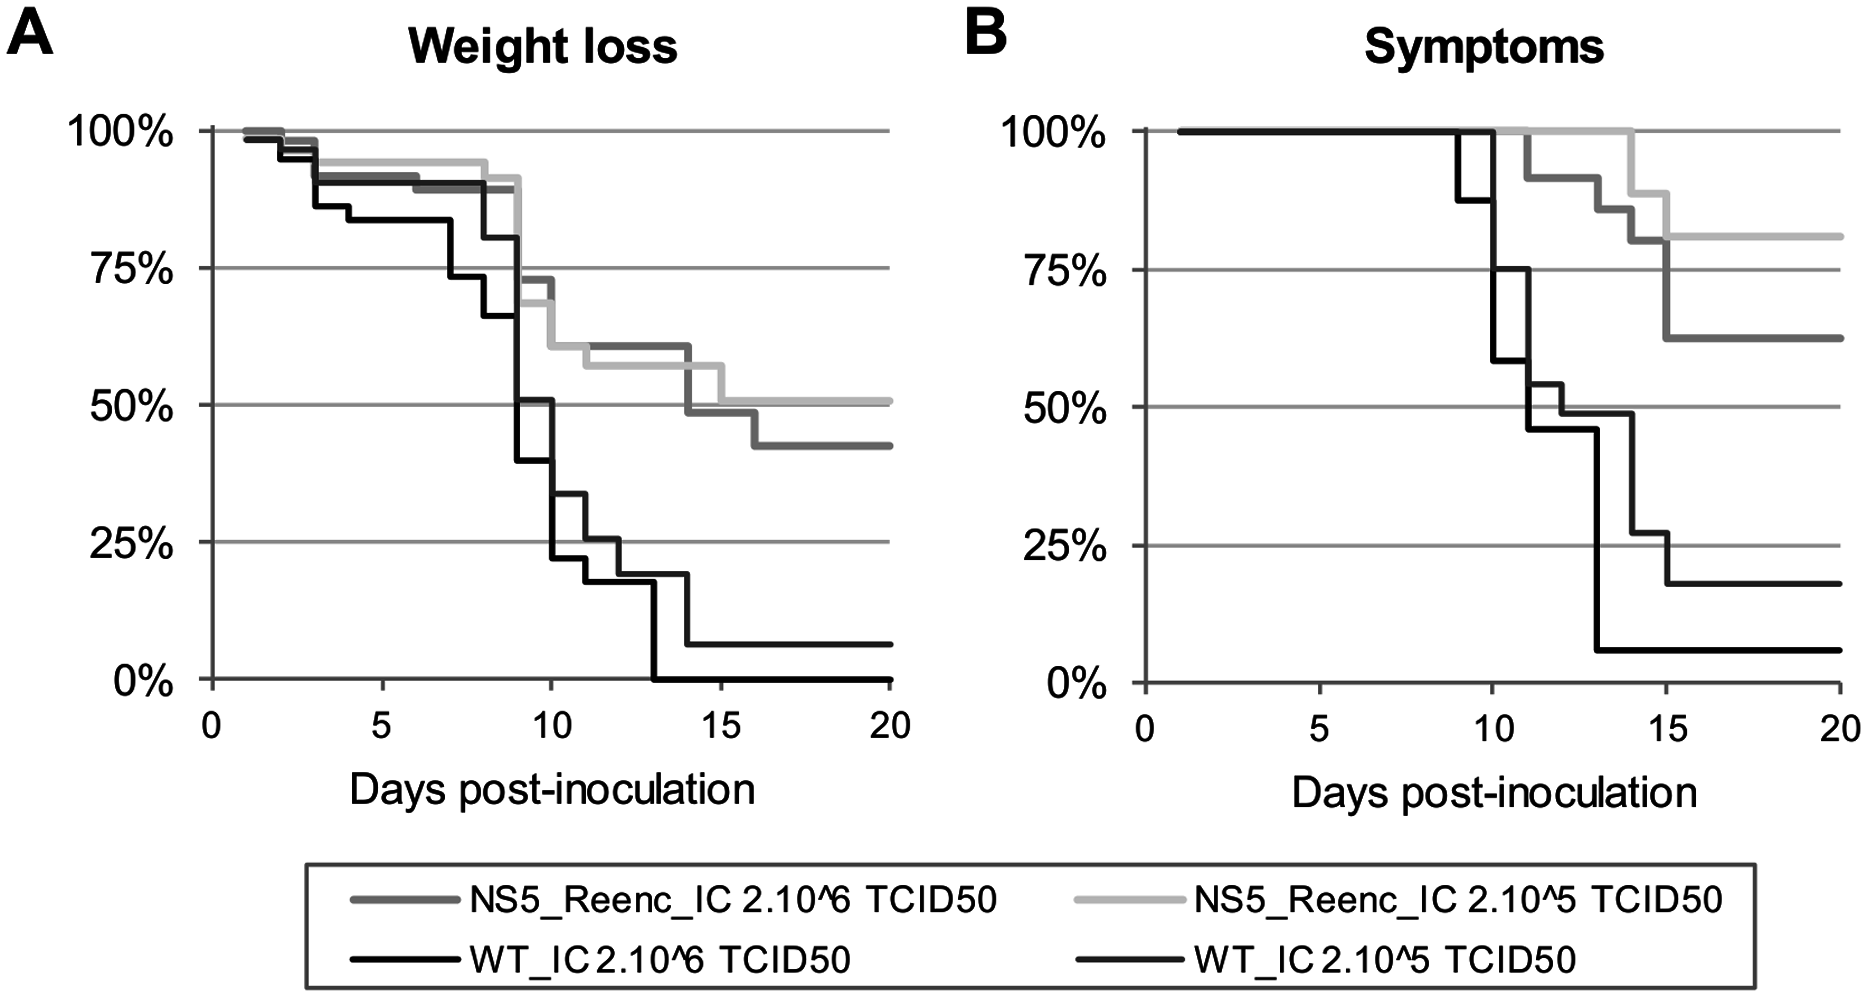 Kaplan-Meier survival analysis using as criteria, a weight loss of more than 6% (A) and appearance of at least one symptom (B).